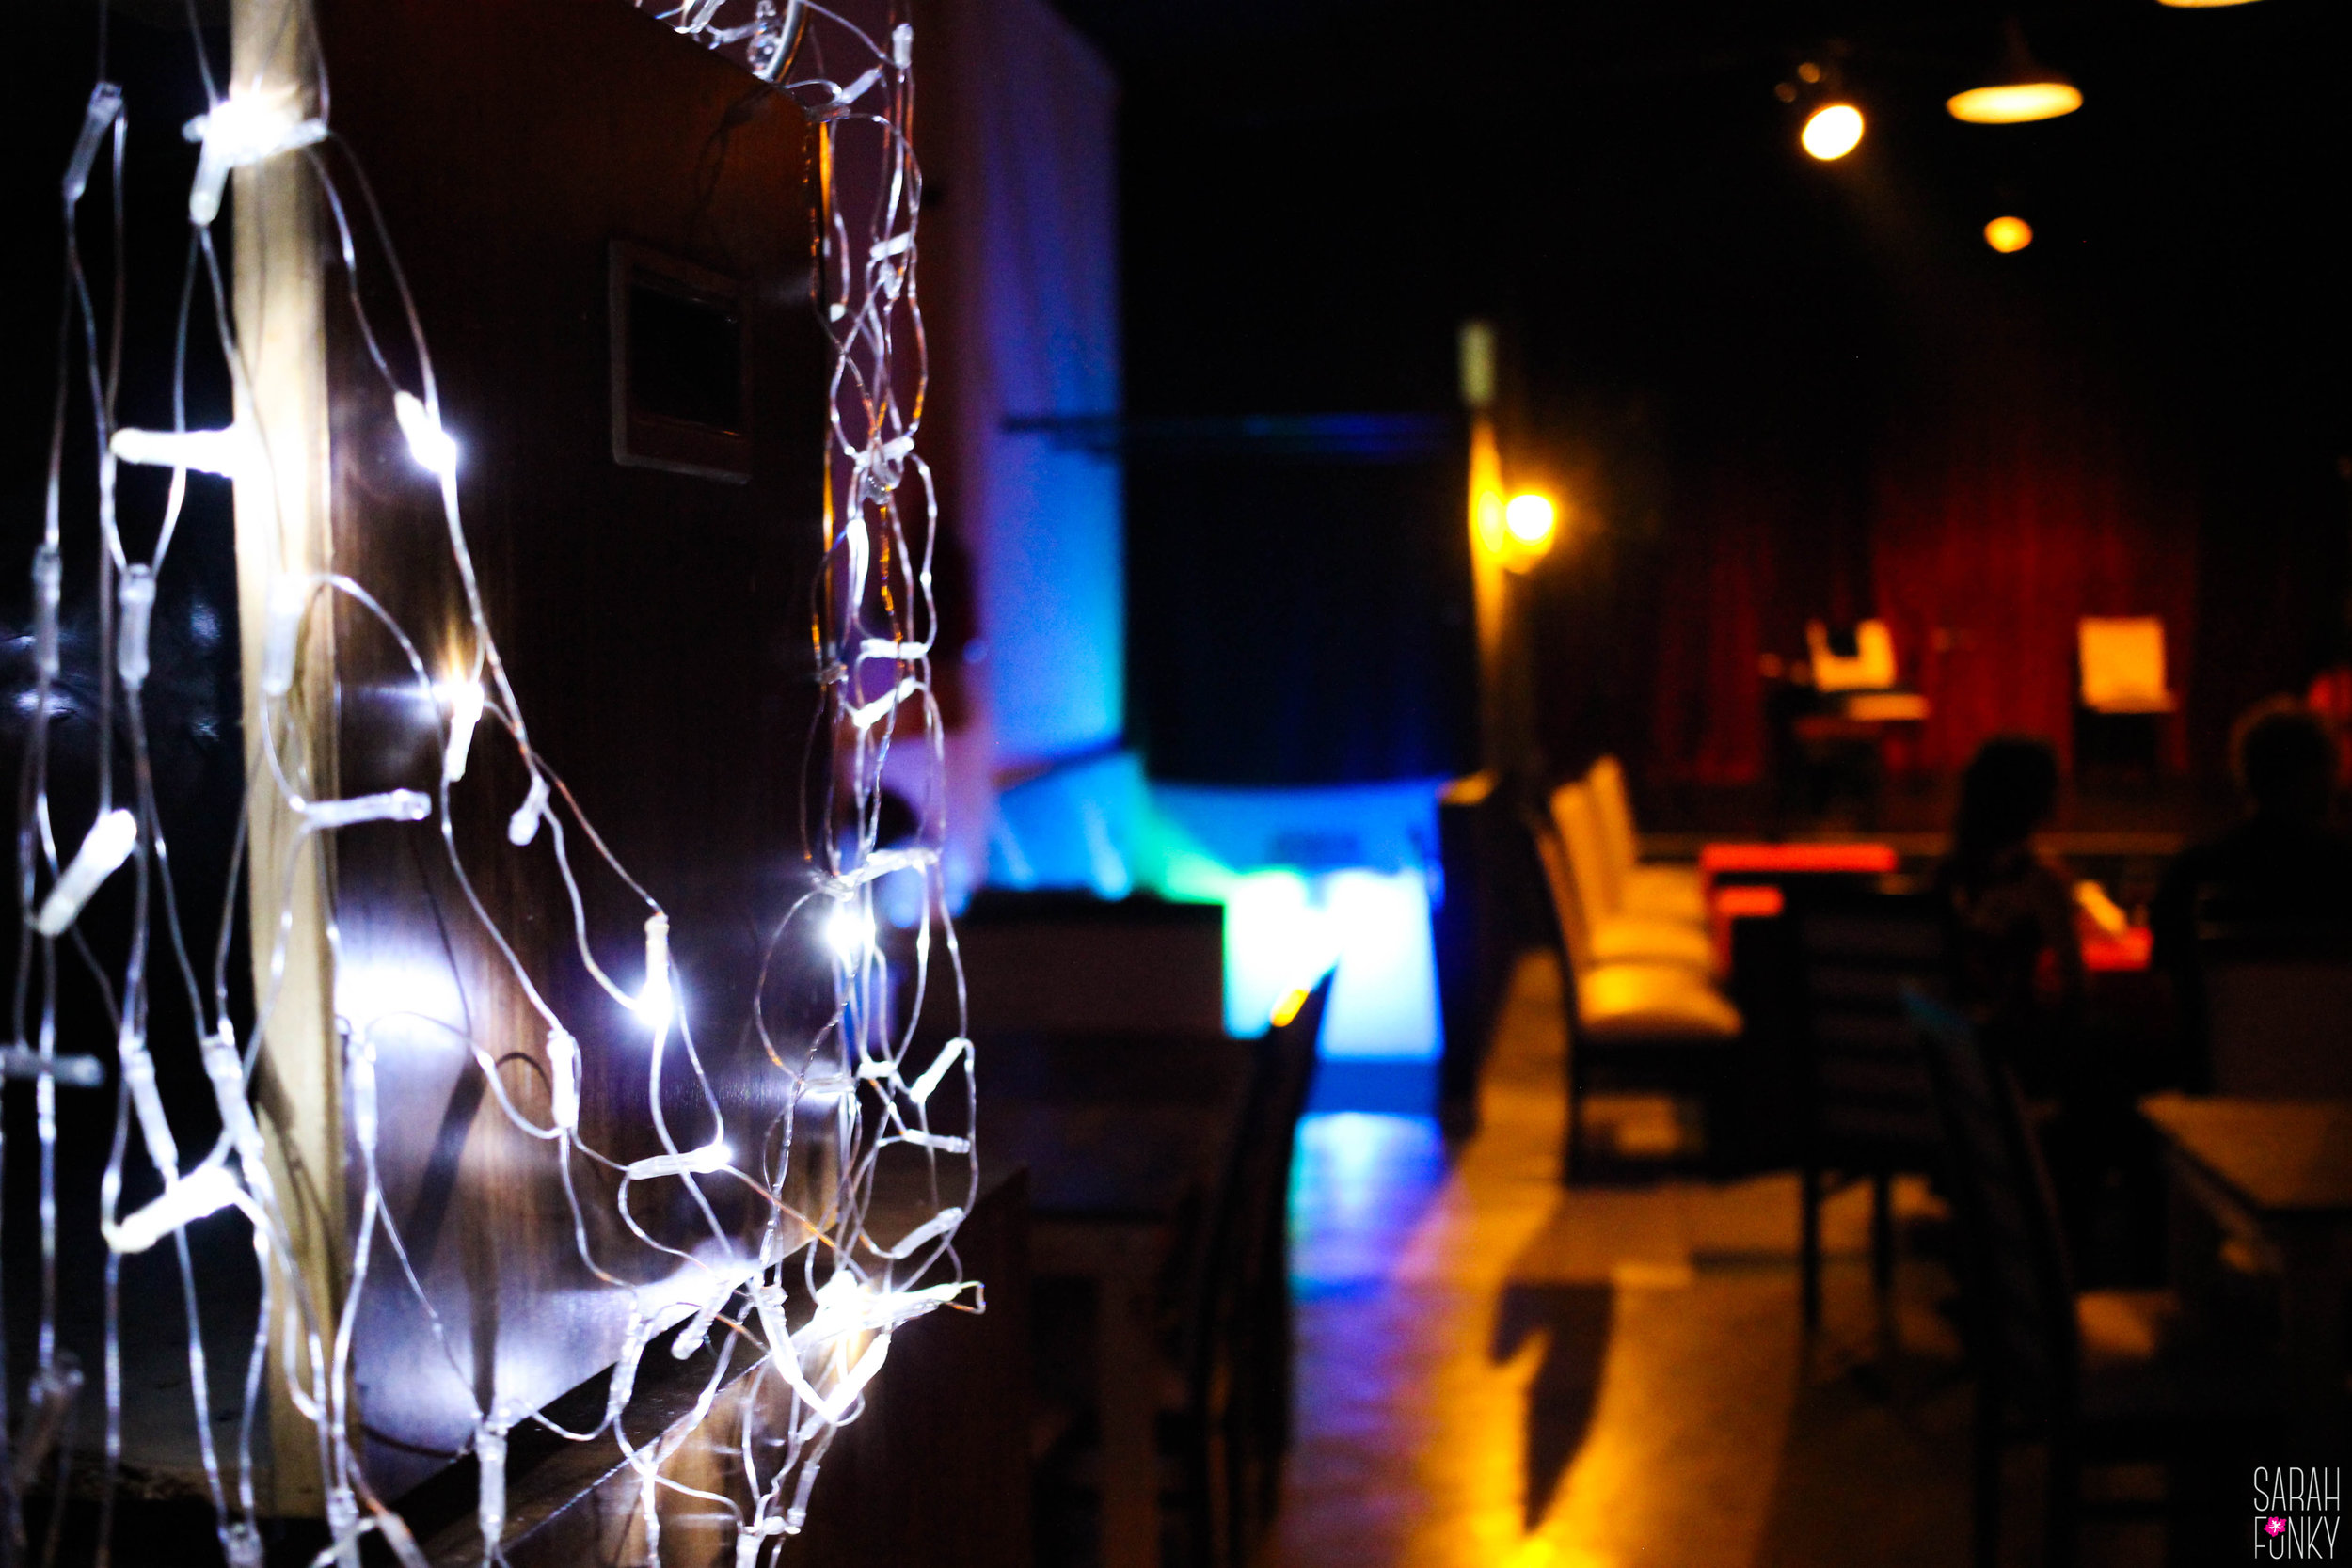 Lights hang from the walls, creating an enchanting atmosphere.